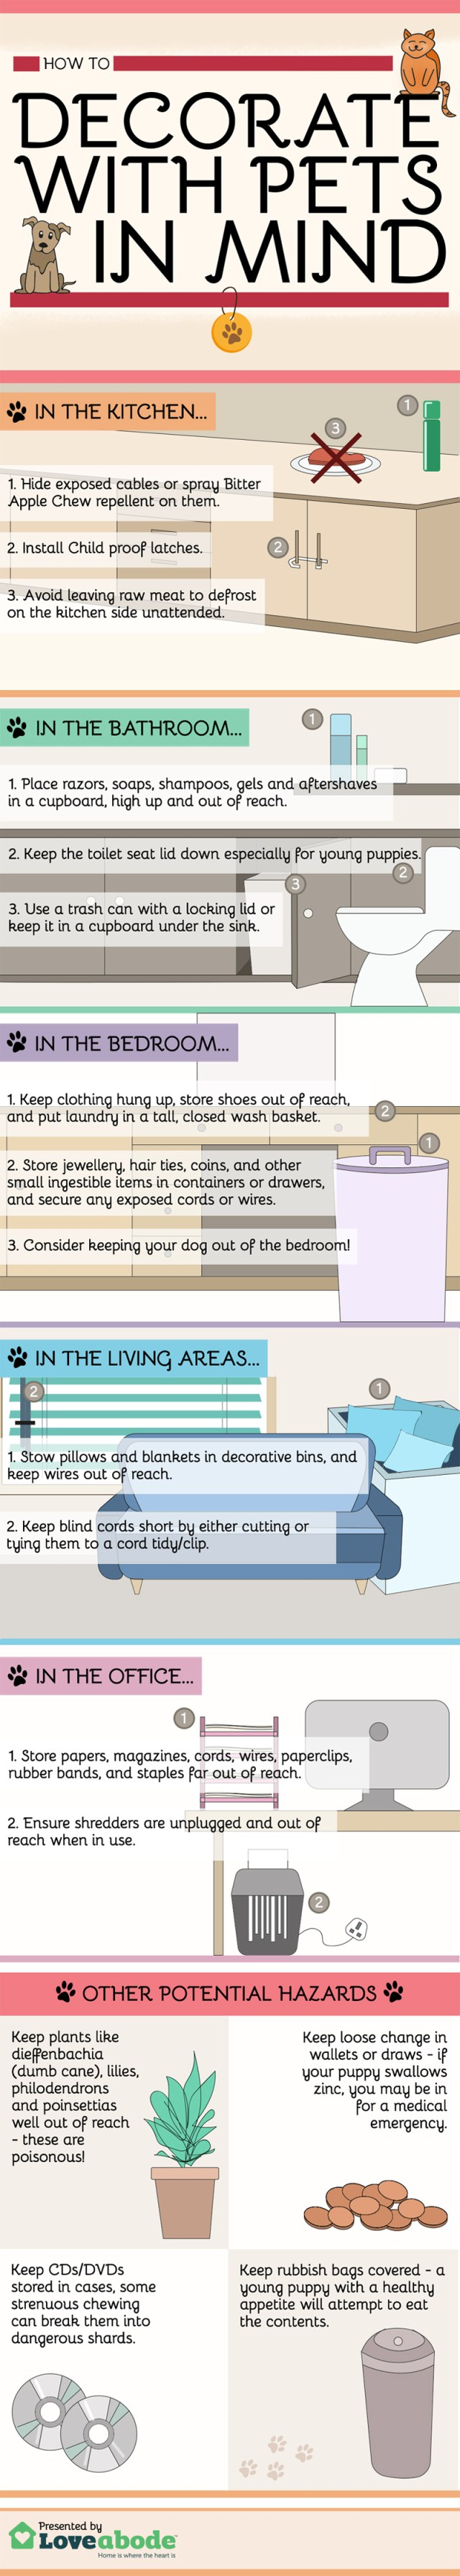 Love Abode - Decorating With A Pet In Mind - Infographic (1)